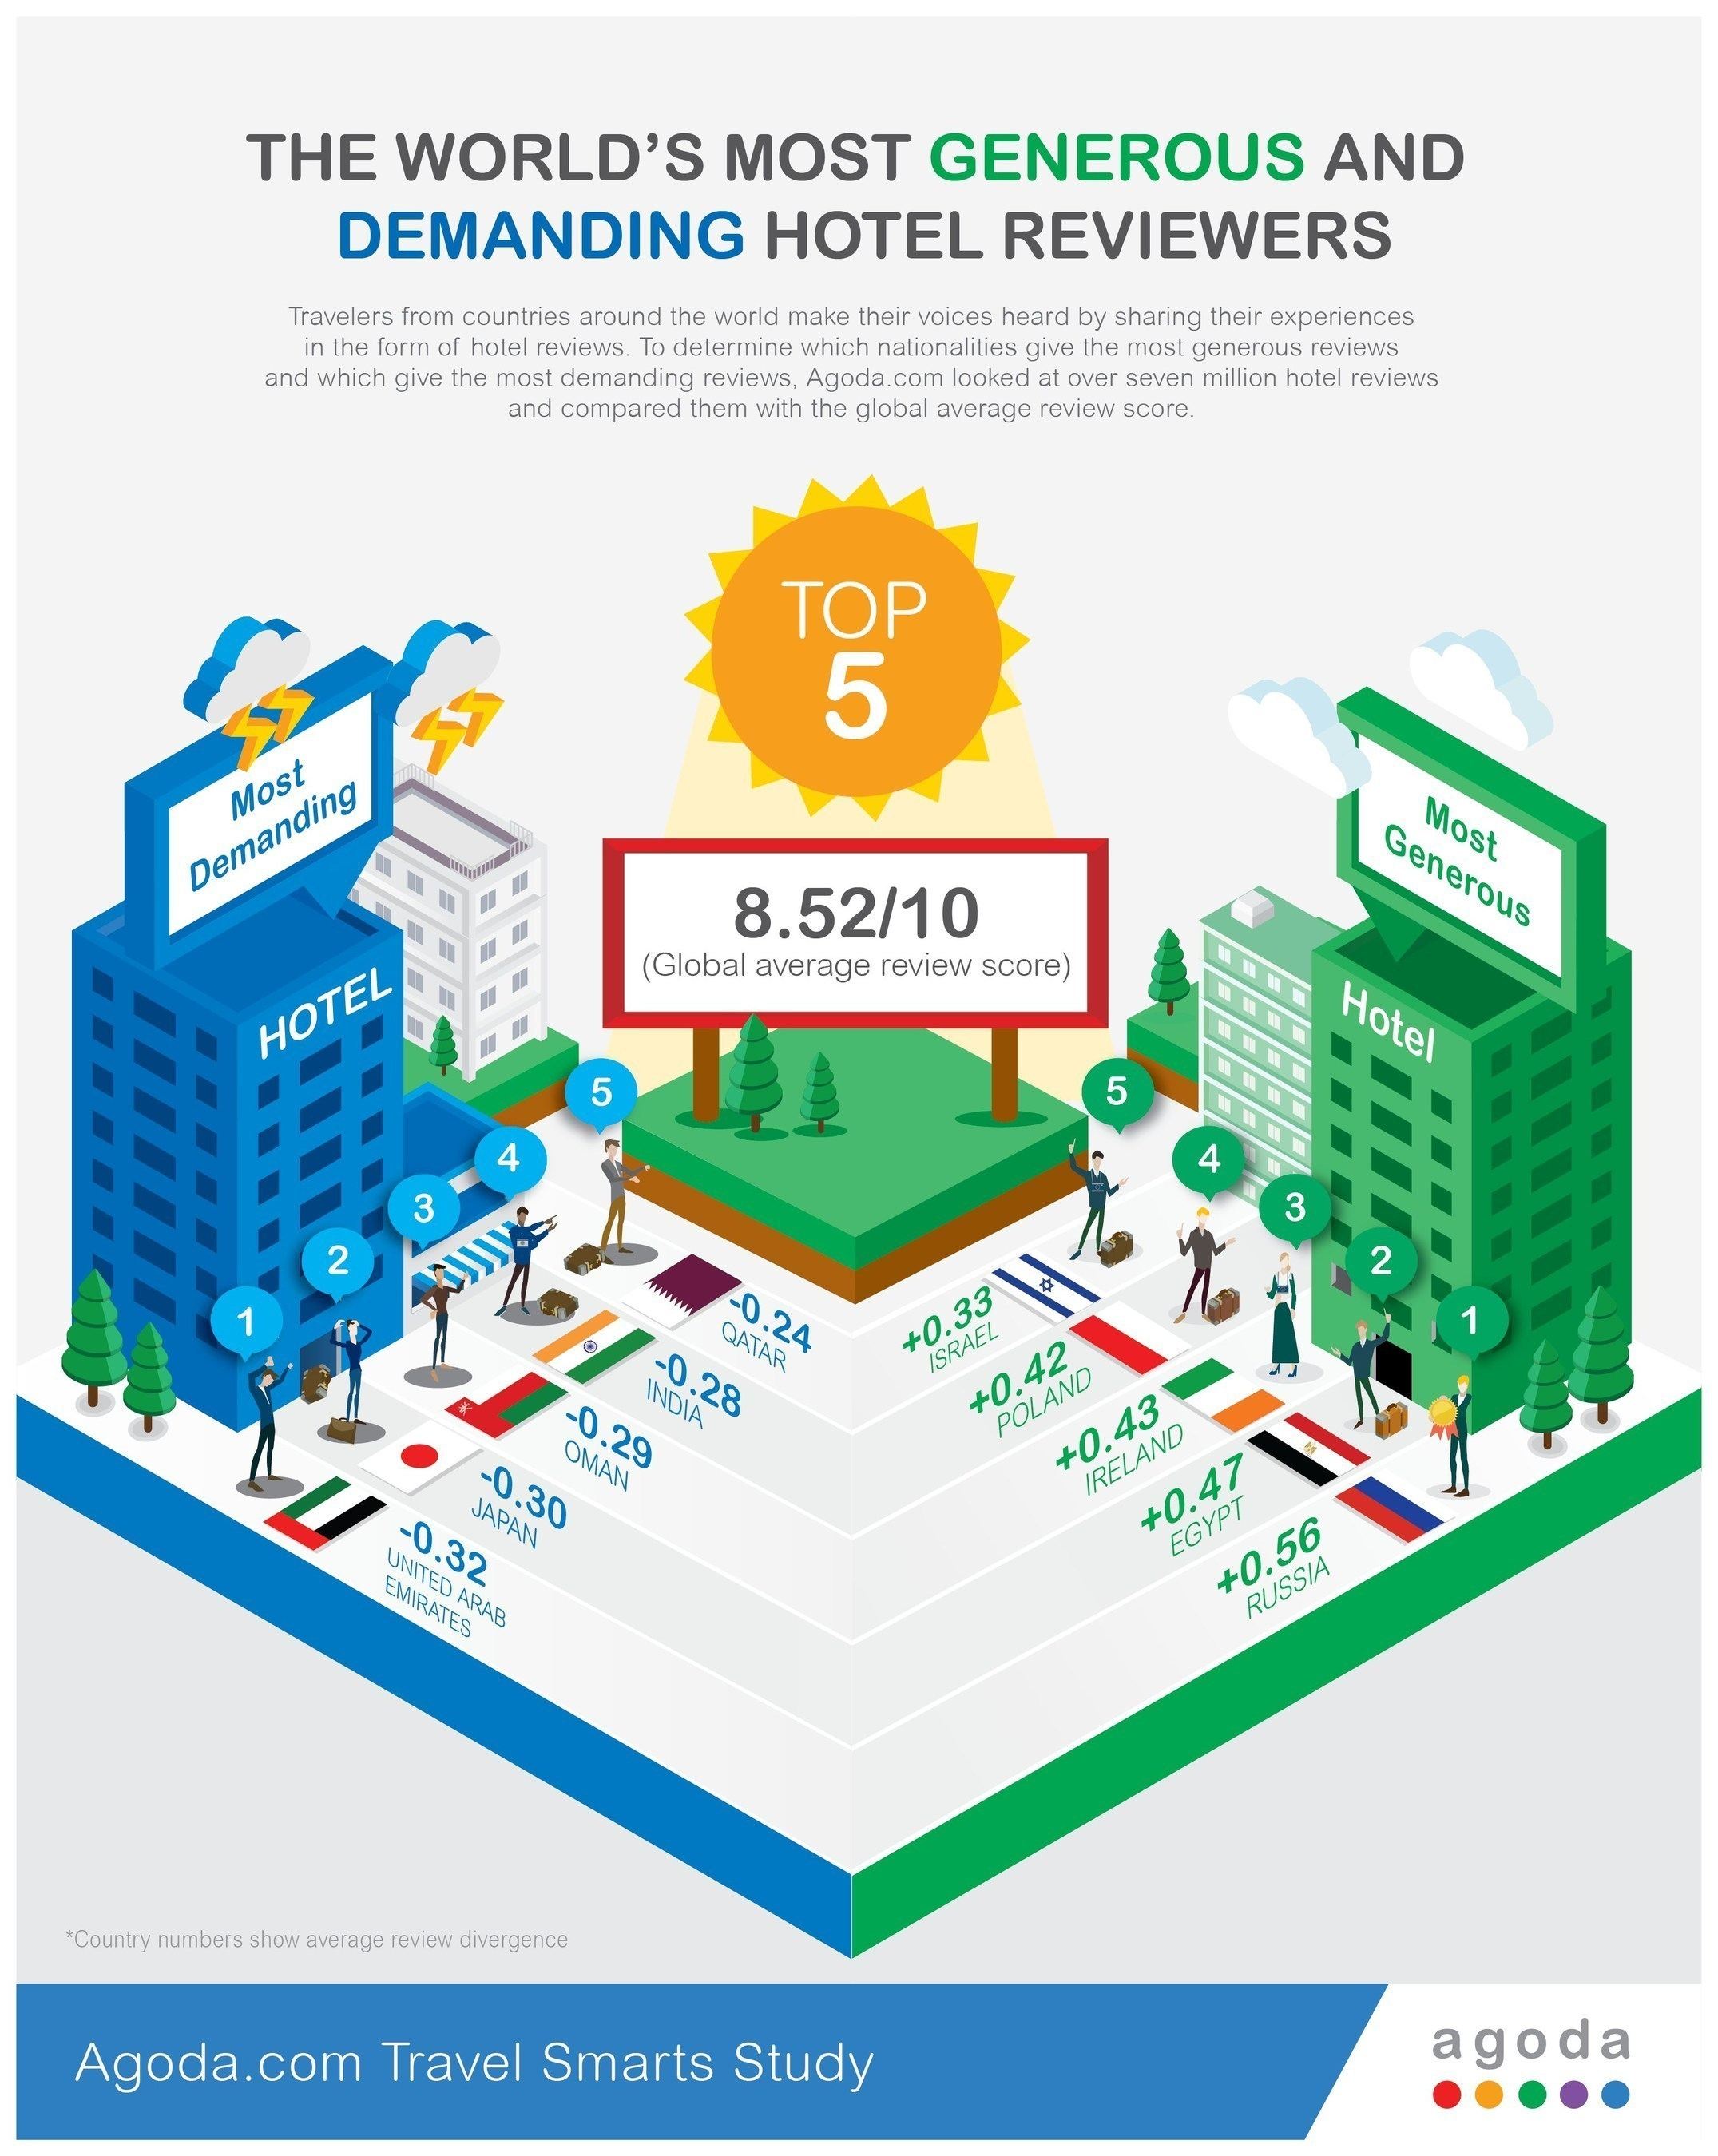 Agoda.com Travel Smarts Infographic showing which nationalities give the most generous and demanding hotel ...